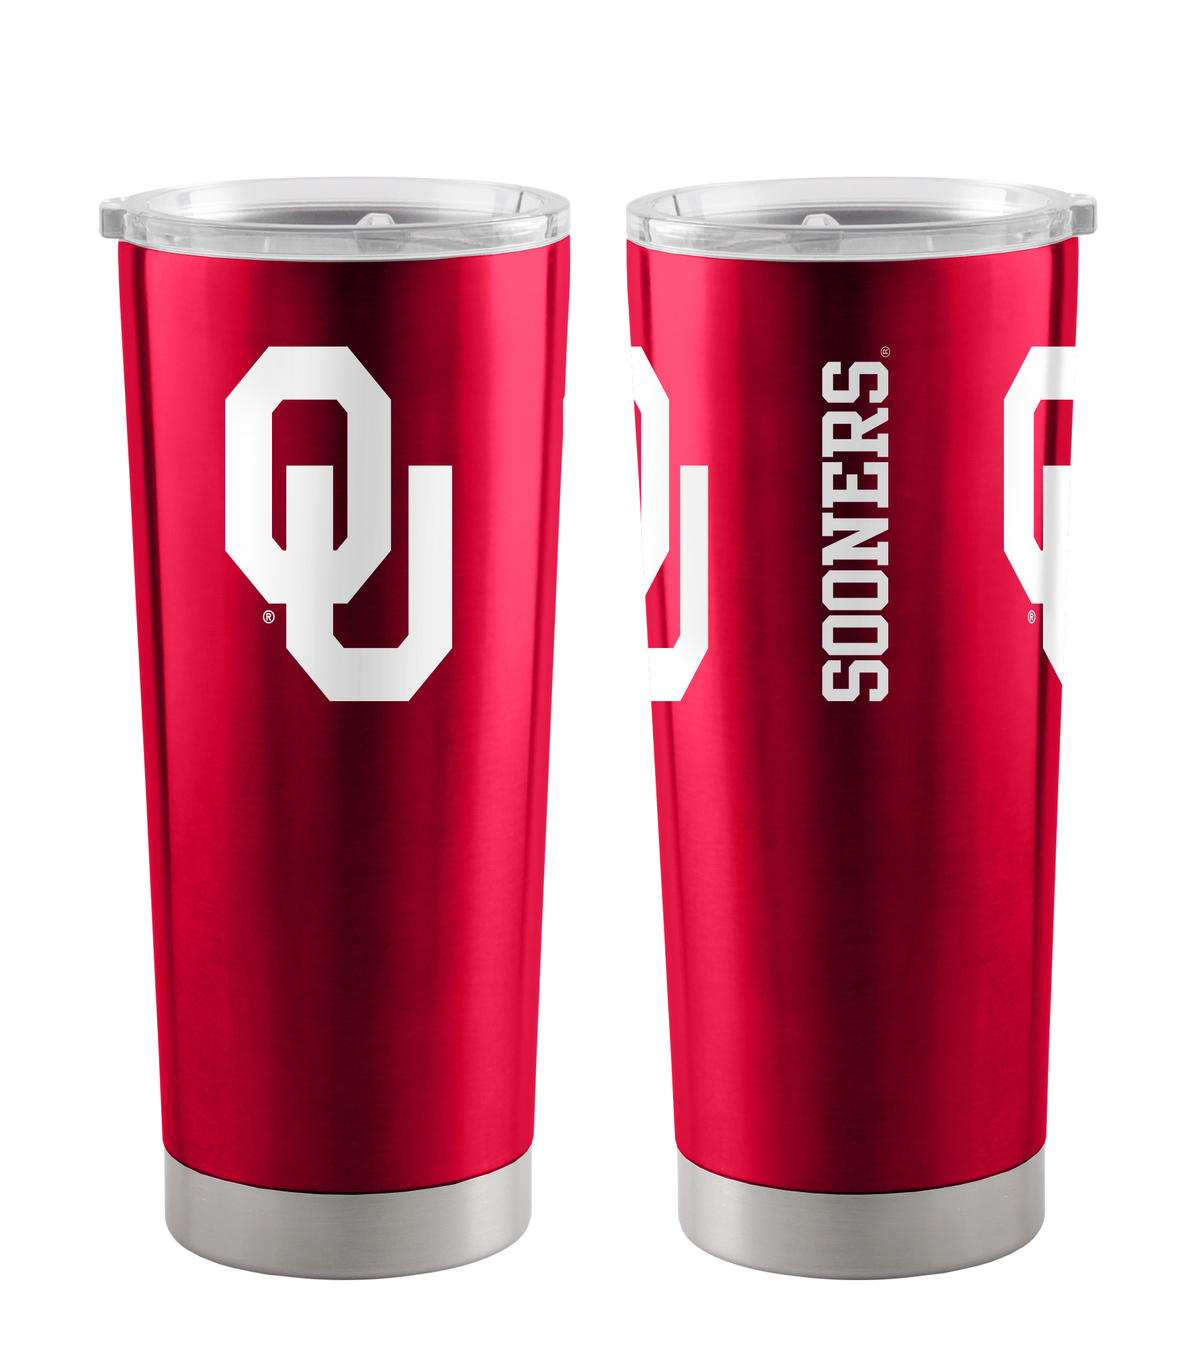 University of Oklahoma Sooners 20 oz Insulated Stainless Steel Tumbler